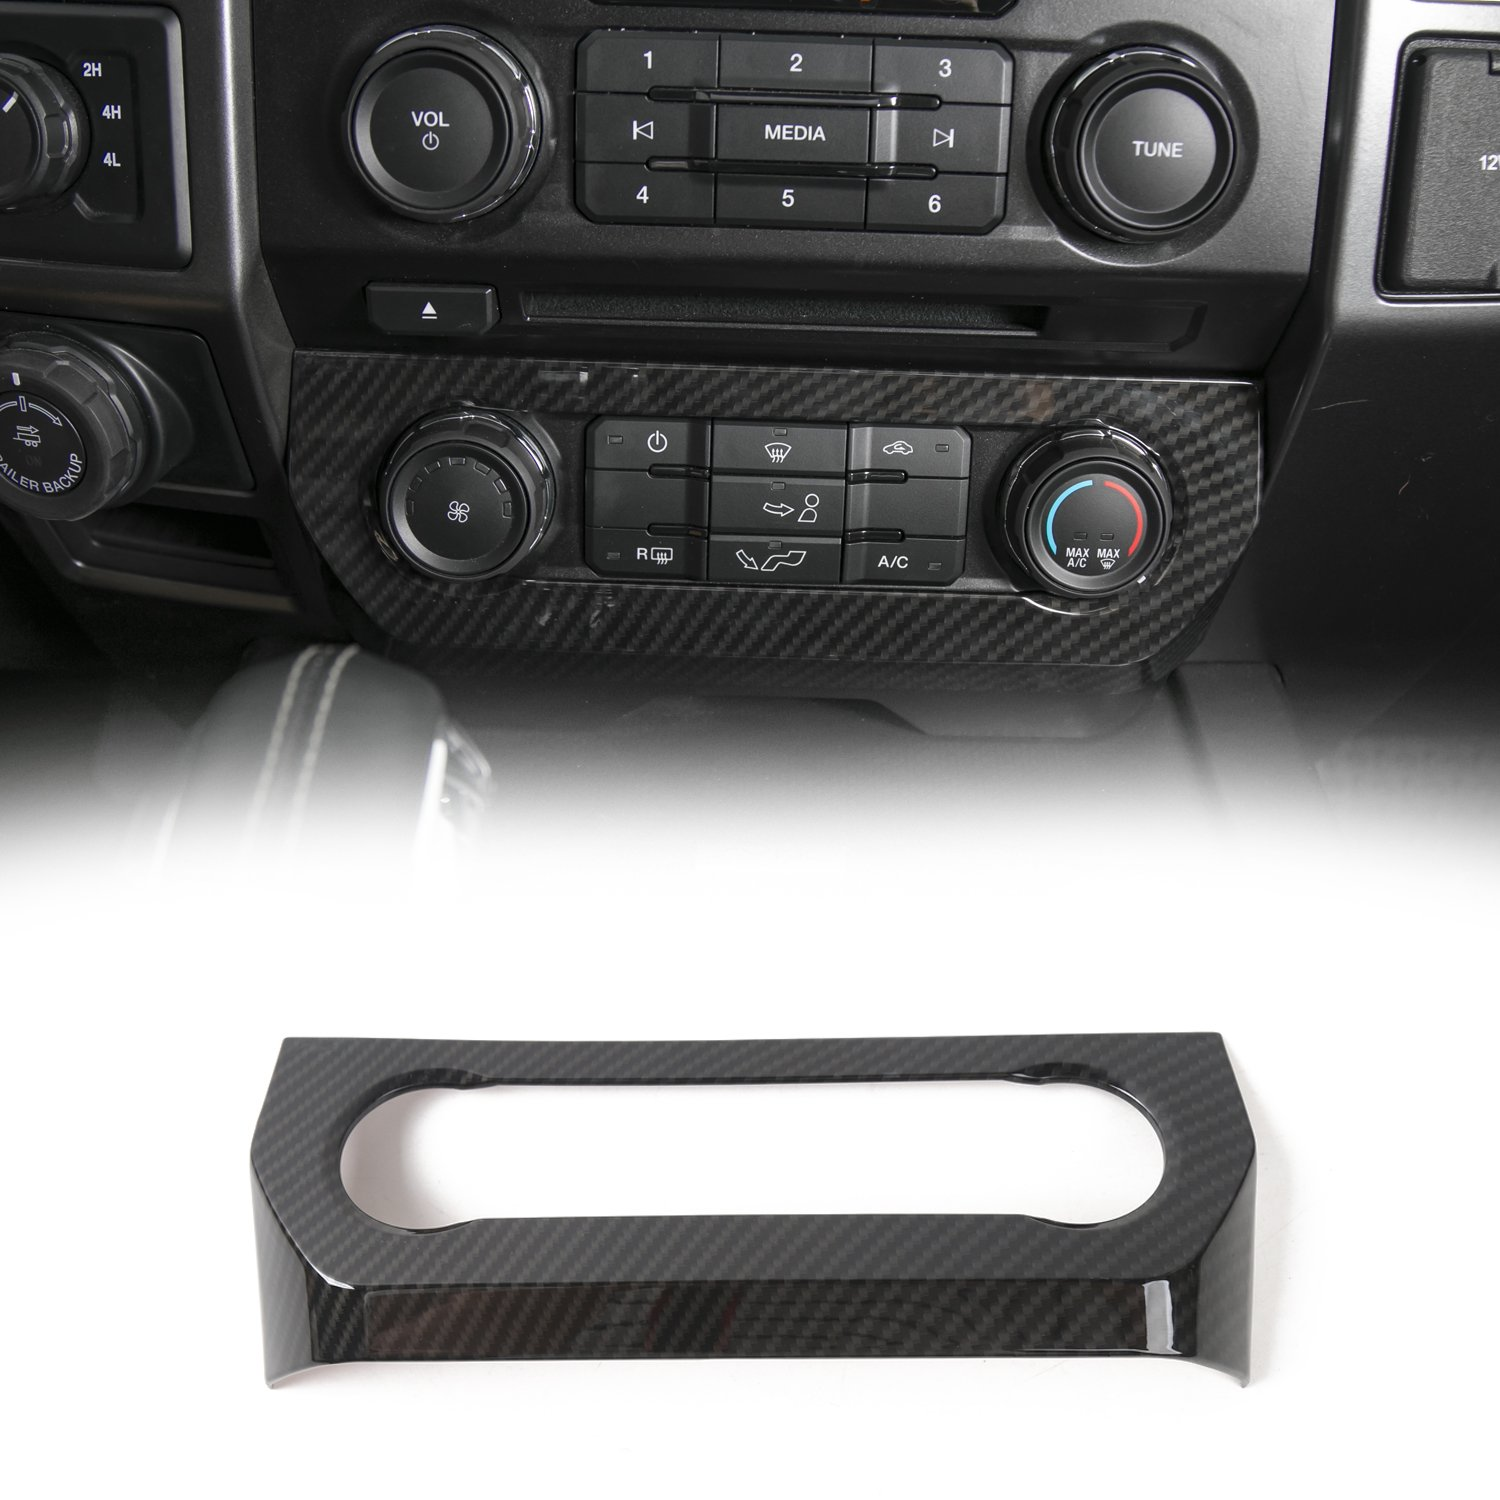 Voodonala Black Carbon Fiber Texture Central Air Condition Control Panel Covers For Ford F150 2015 2016 2017 …